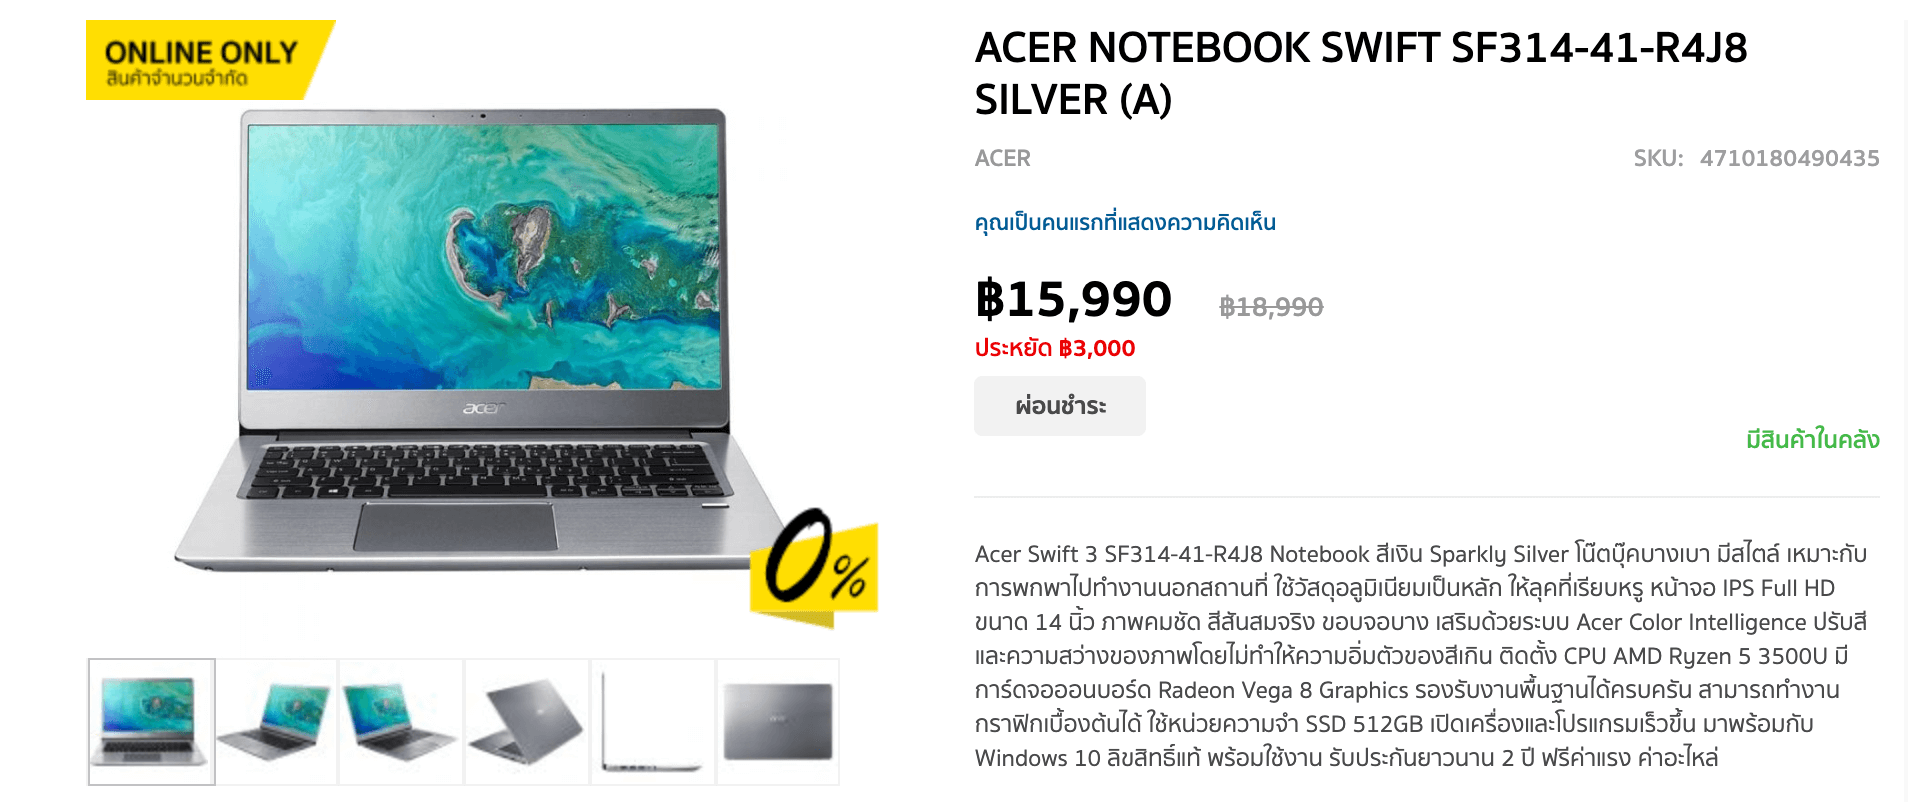 ACER NOTEBOOK SWIFT SF314 41 R4J8 SILVER A